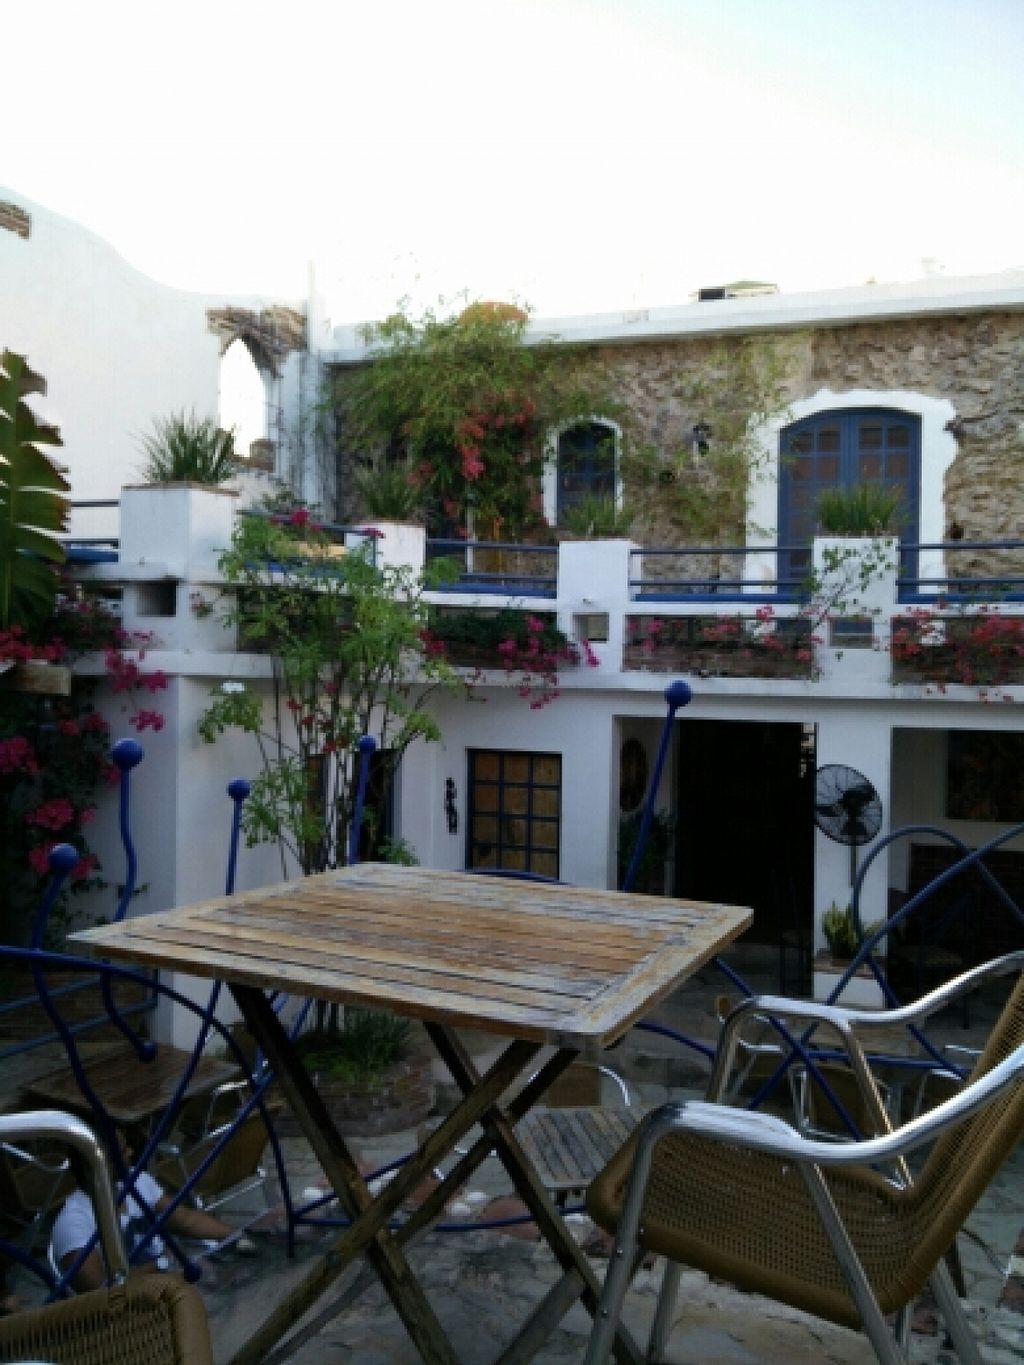 """Photo of El Rey del Falafel  by <a href=""""/members/profile/VeggieLausi"""">VeggieLausi</a> <br/>Beautiful garden to relax <br/> February 13, 2016  - <a href='/contact/abuse/image/34775/136134'>Report</a>"""